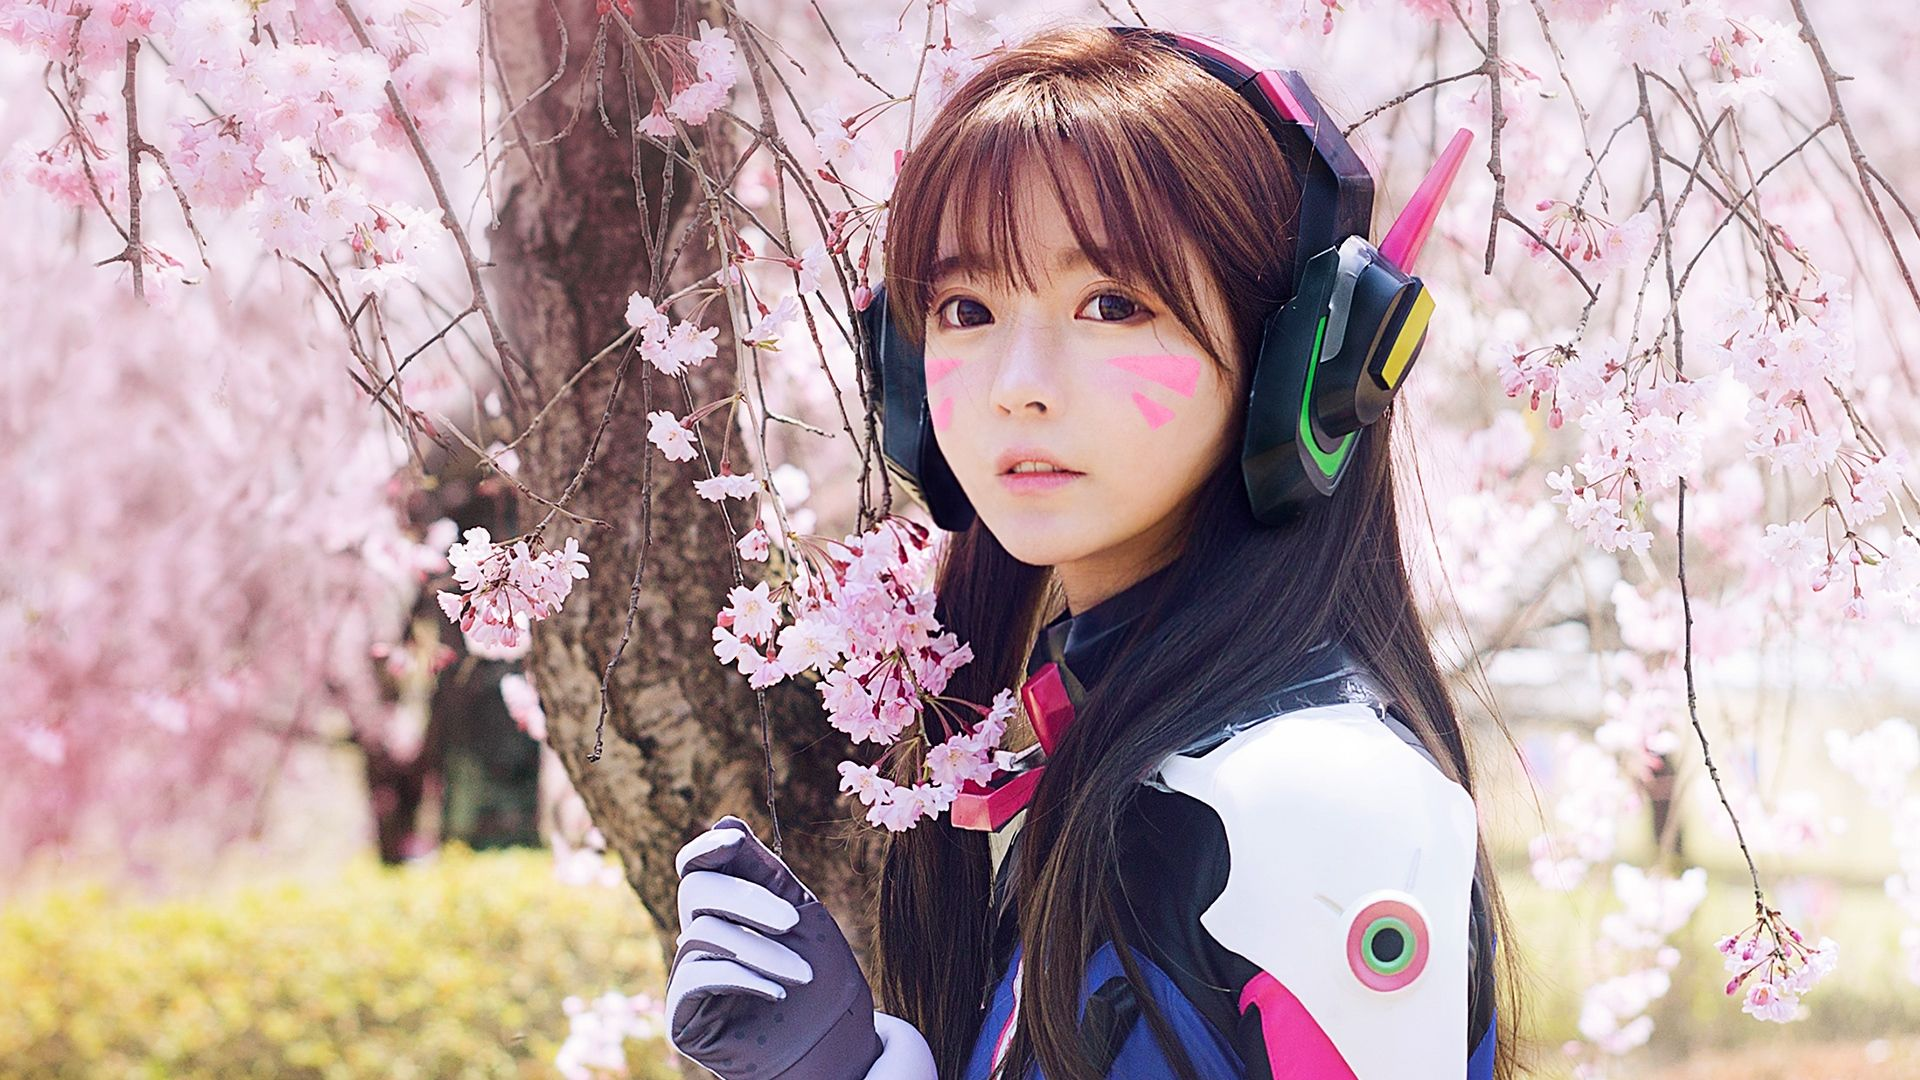 Cool Dva Overwatch Cosplay 1920X1080 Wallpaper -7391